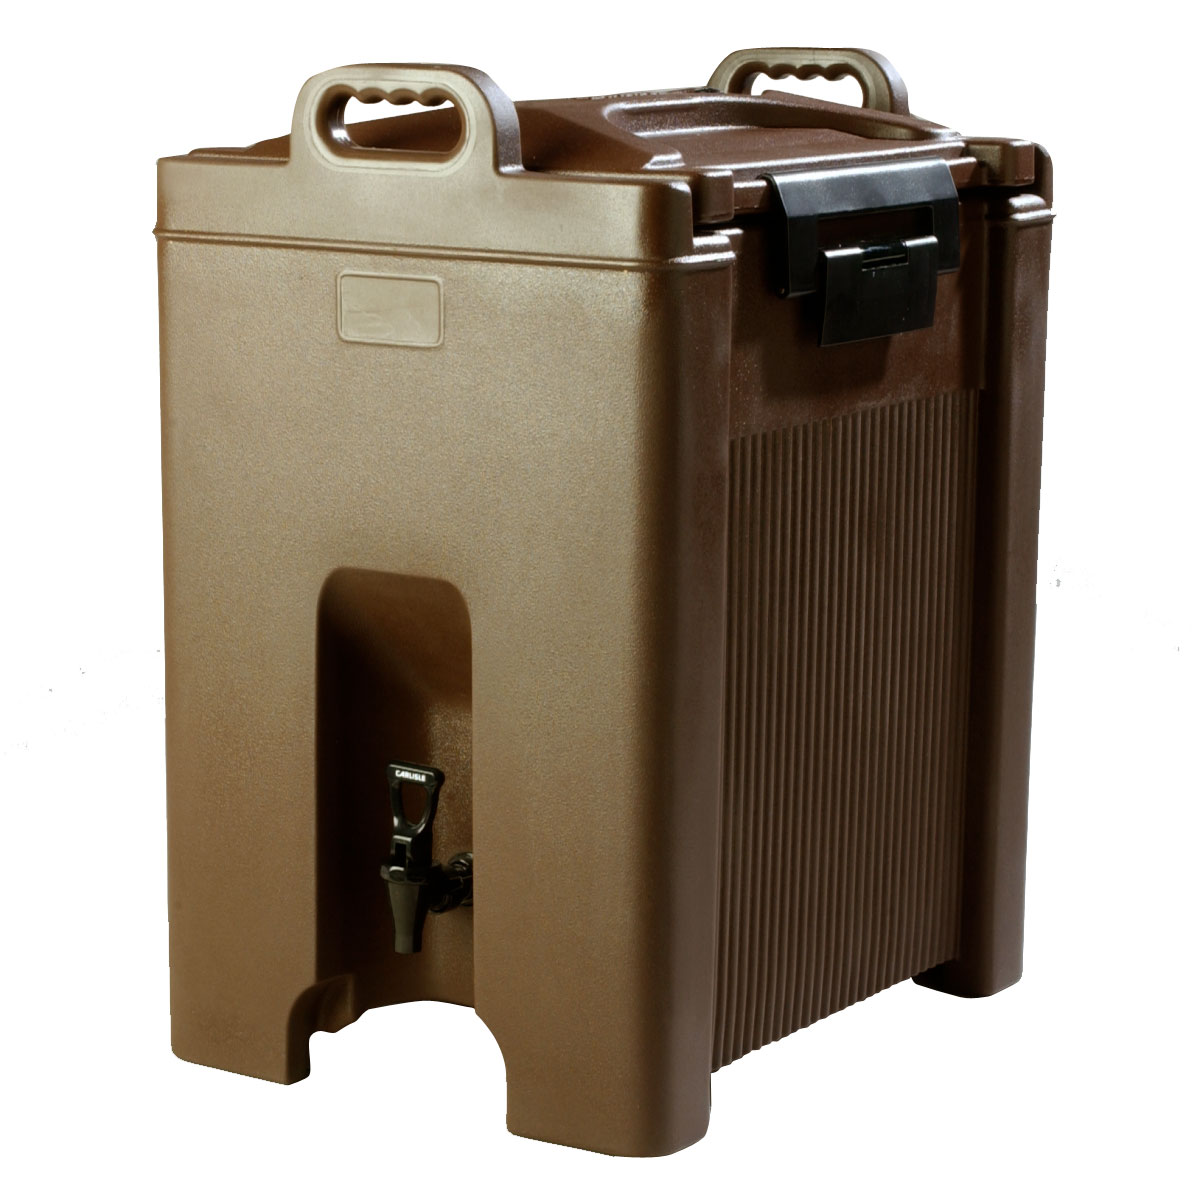 BEVERAGE SERVER INSULATED - 38Lt (BROWN) 13.8kg - 416 x 524 x 678mm